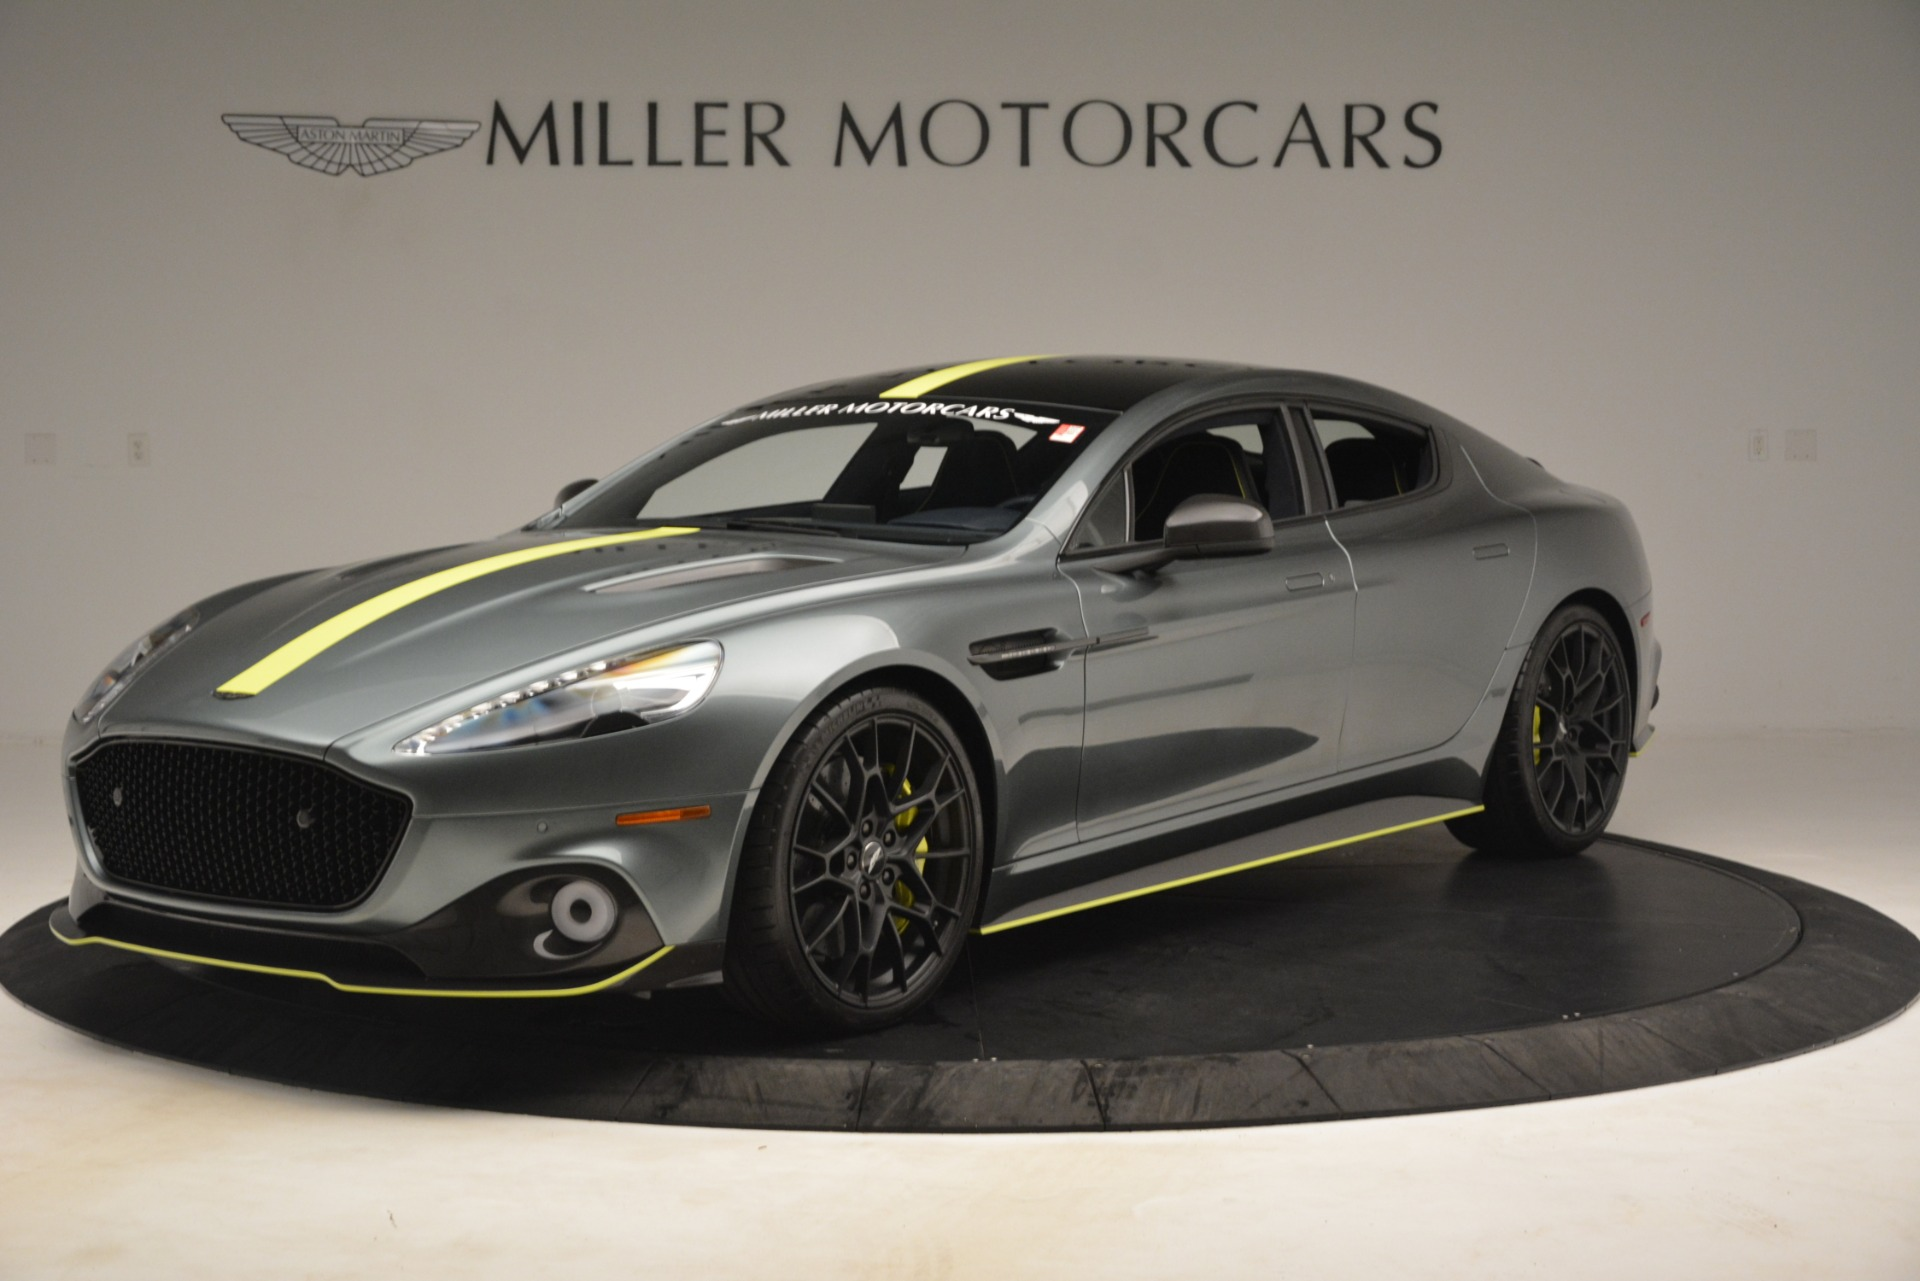 New 2019 Aston Martin Rapide AMR Sedan for sale $282,980 at Bugatti of Greenwich in Greenwich CT 06830 1